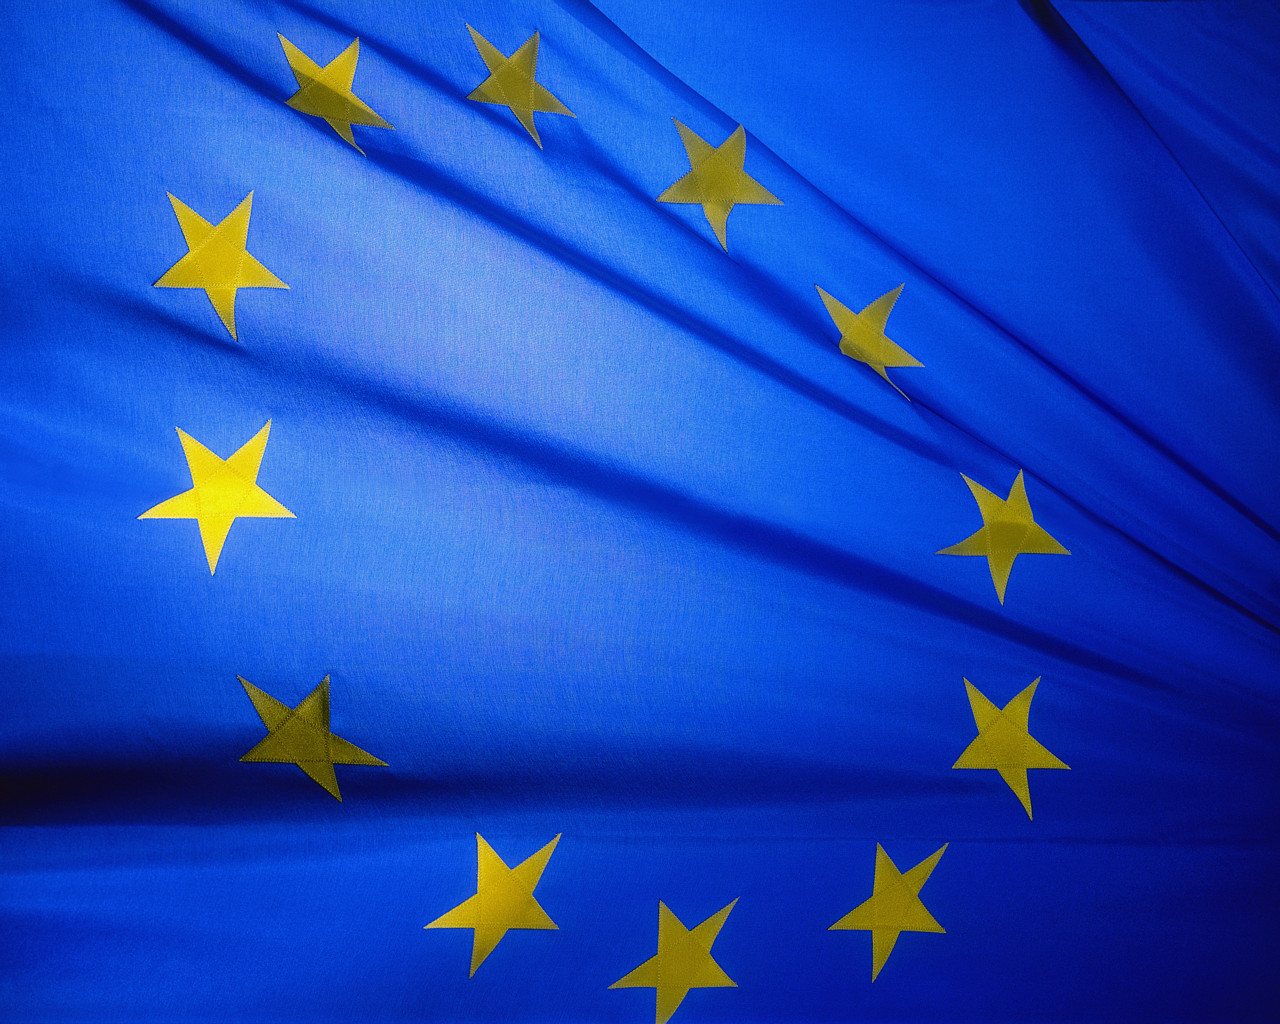 European Union formally blames Russia for the GhostWriter operation